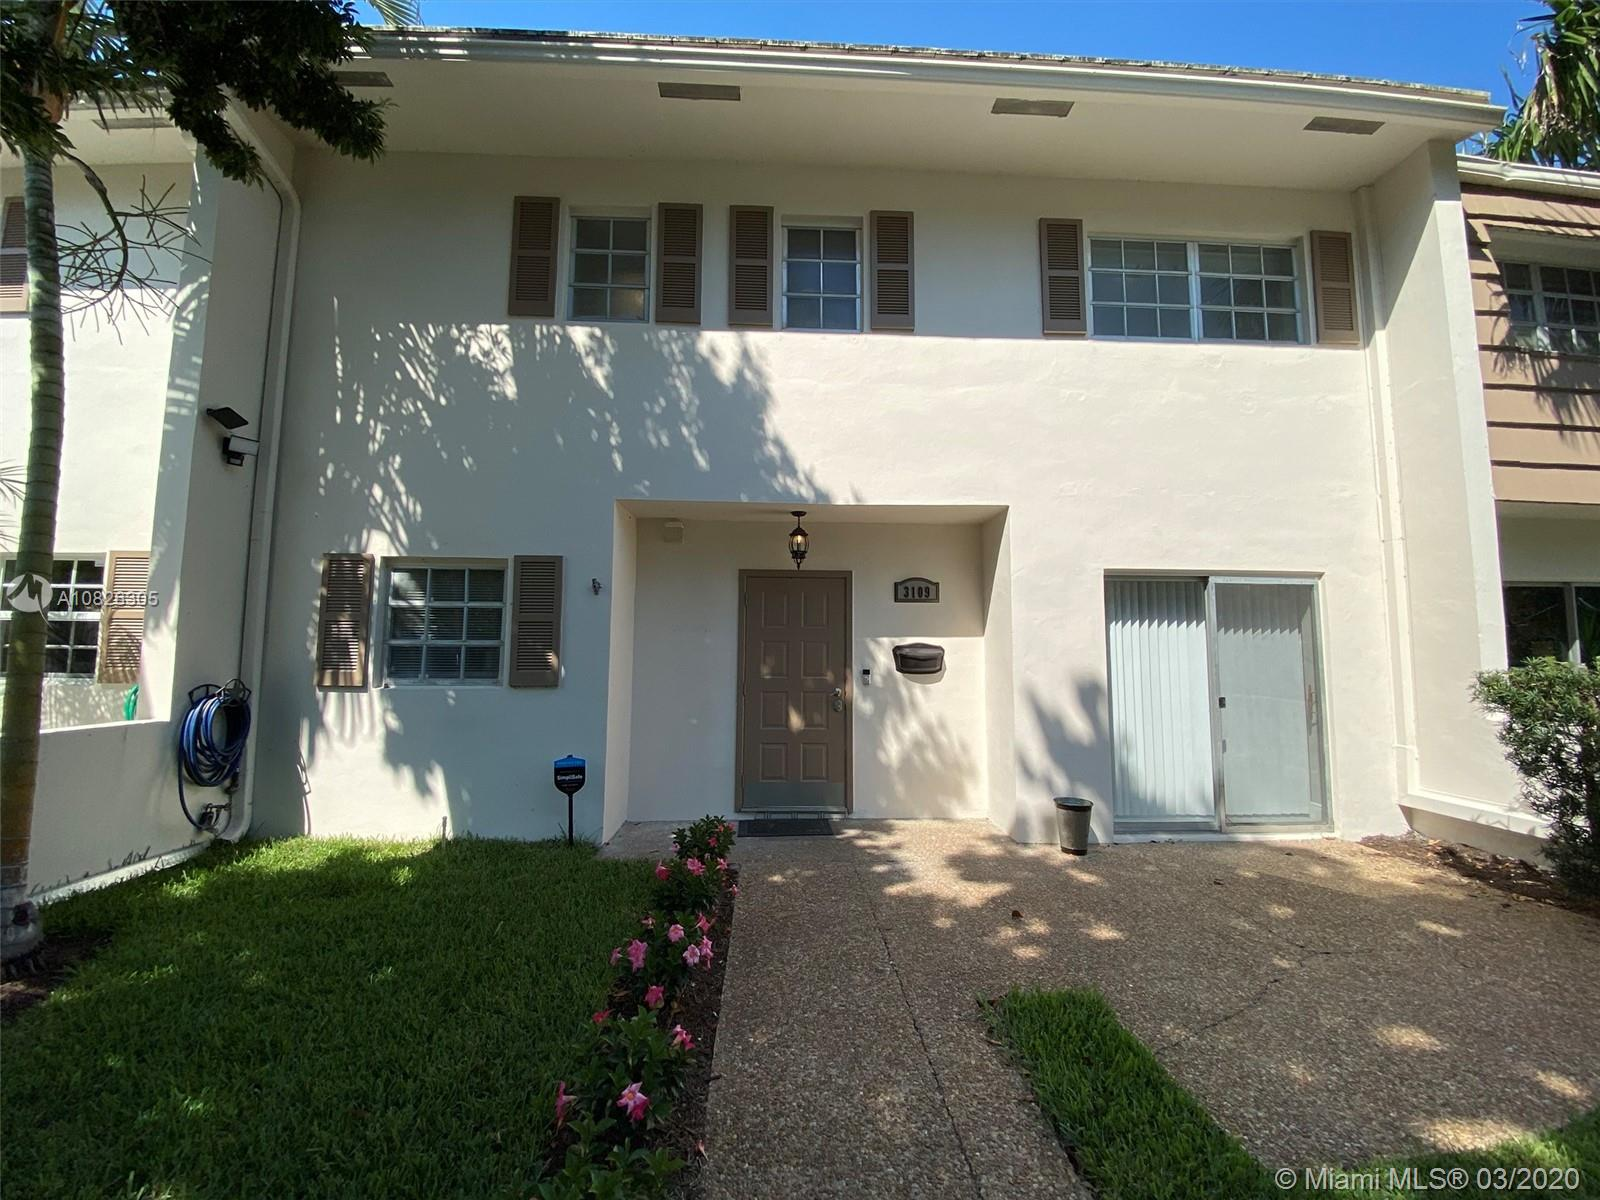 Beautiful/modern large 2 story, 3 bedroom , 2 1/2 bath townhome with expansive back yard overlooking a lake. first floor lanai, second floor screened balcony off bedrooms . Gorgeous contemporary finishes!!! Working fireplace, brand new AC! Brand New SS Appliances MUST SEE! brand new Washer/dryer in unit! Golf Course community, and walking distance to casino, entertainment, and to be build resort area! only miles from Beach! Association maintains roof, landscaping, internet, water, etc. etc!